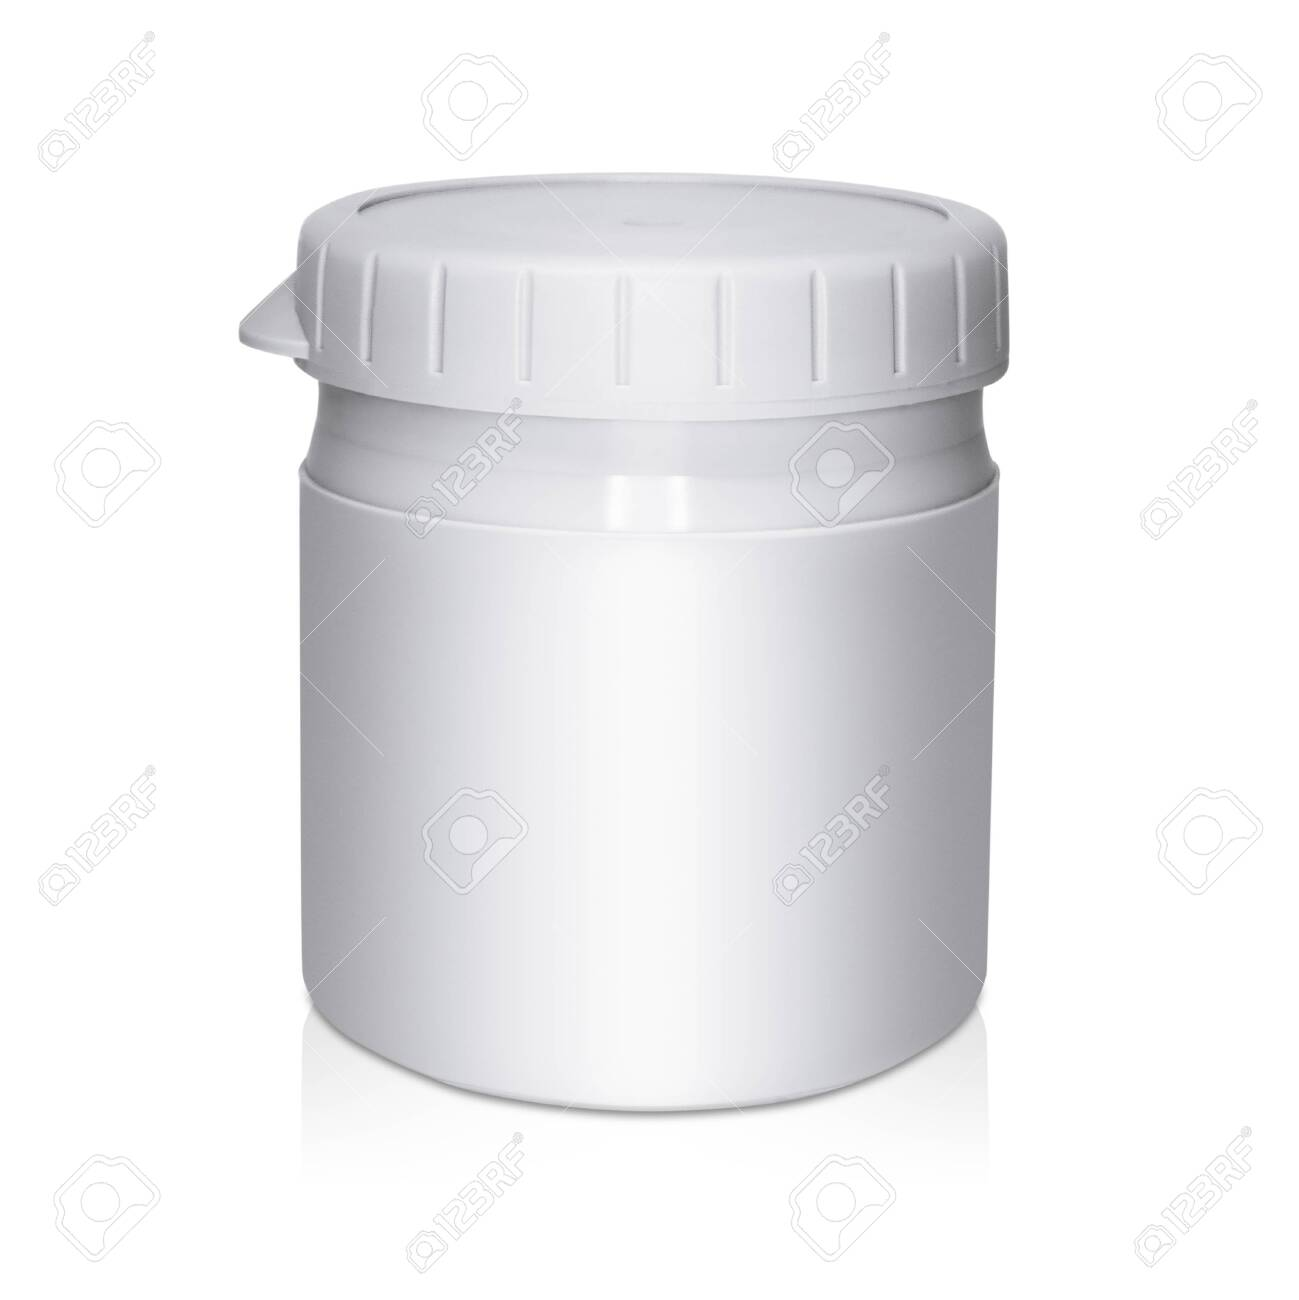 Gray plastic cream container on white background with reflection - 145840998